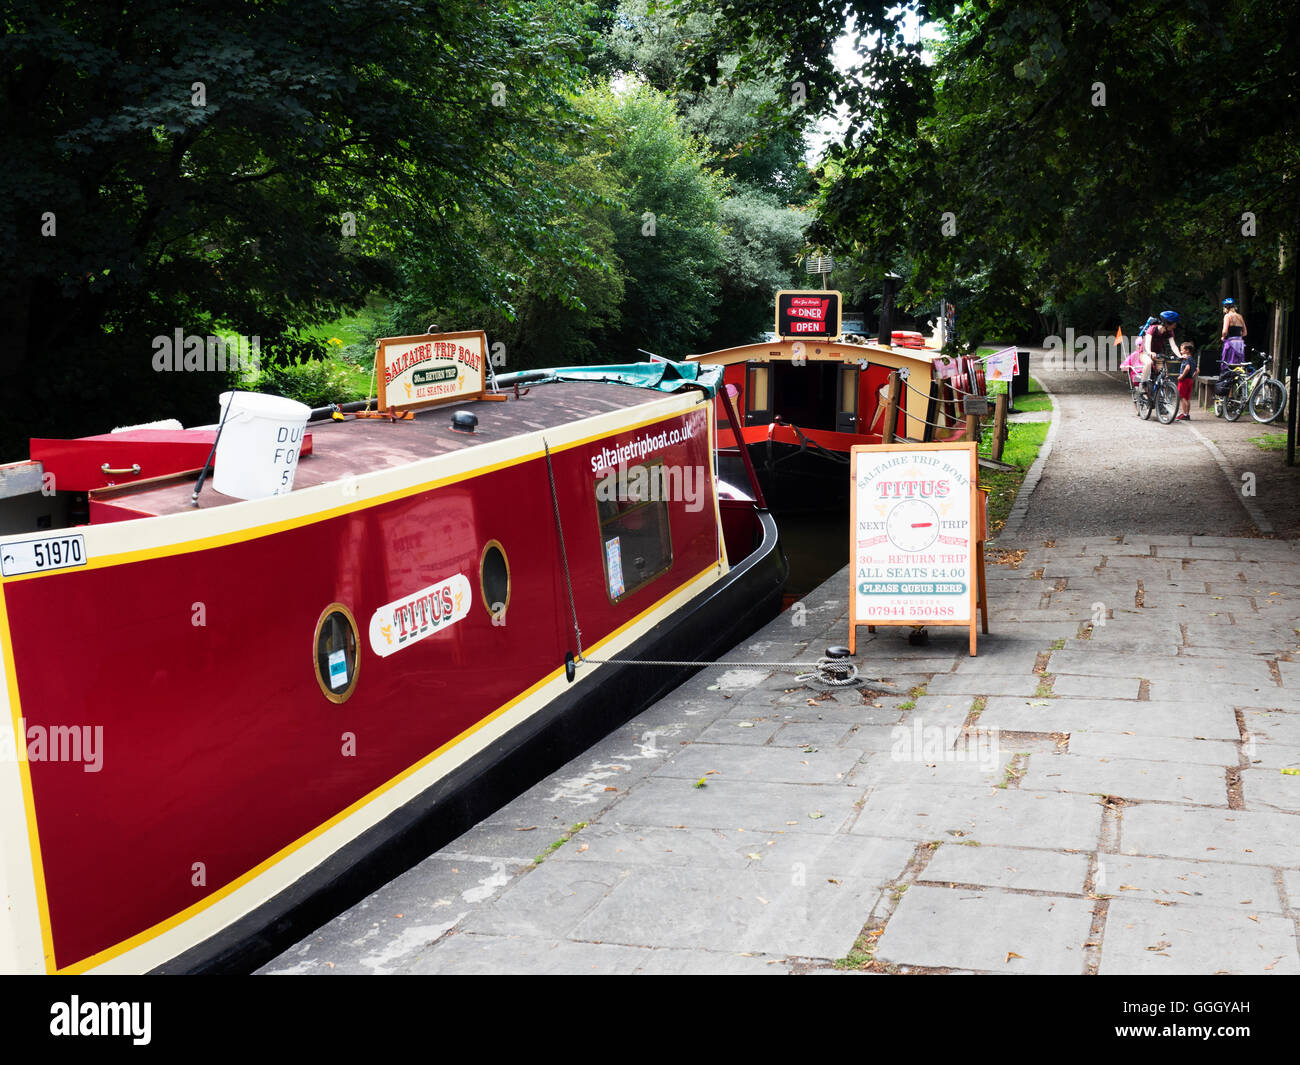 Saltaire Canal Trip Boat on the Leeds and Liverpool Canal at Saltaire West Yorkshire England - Stock Image